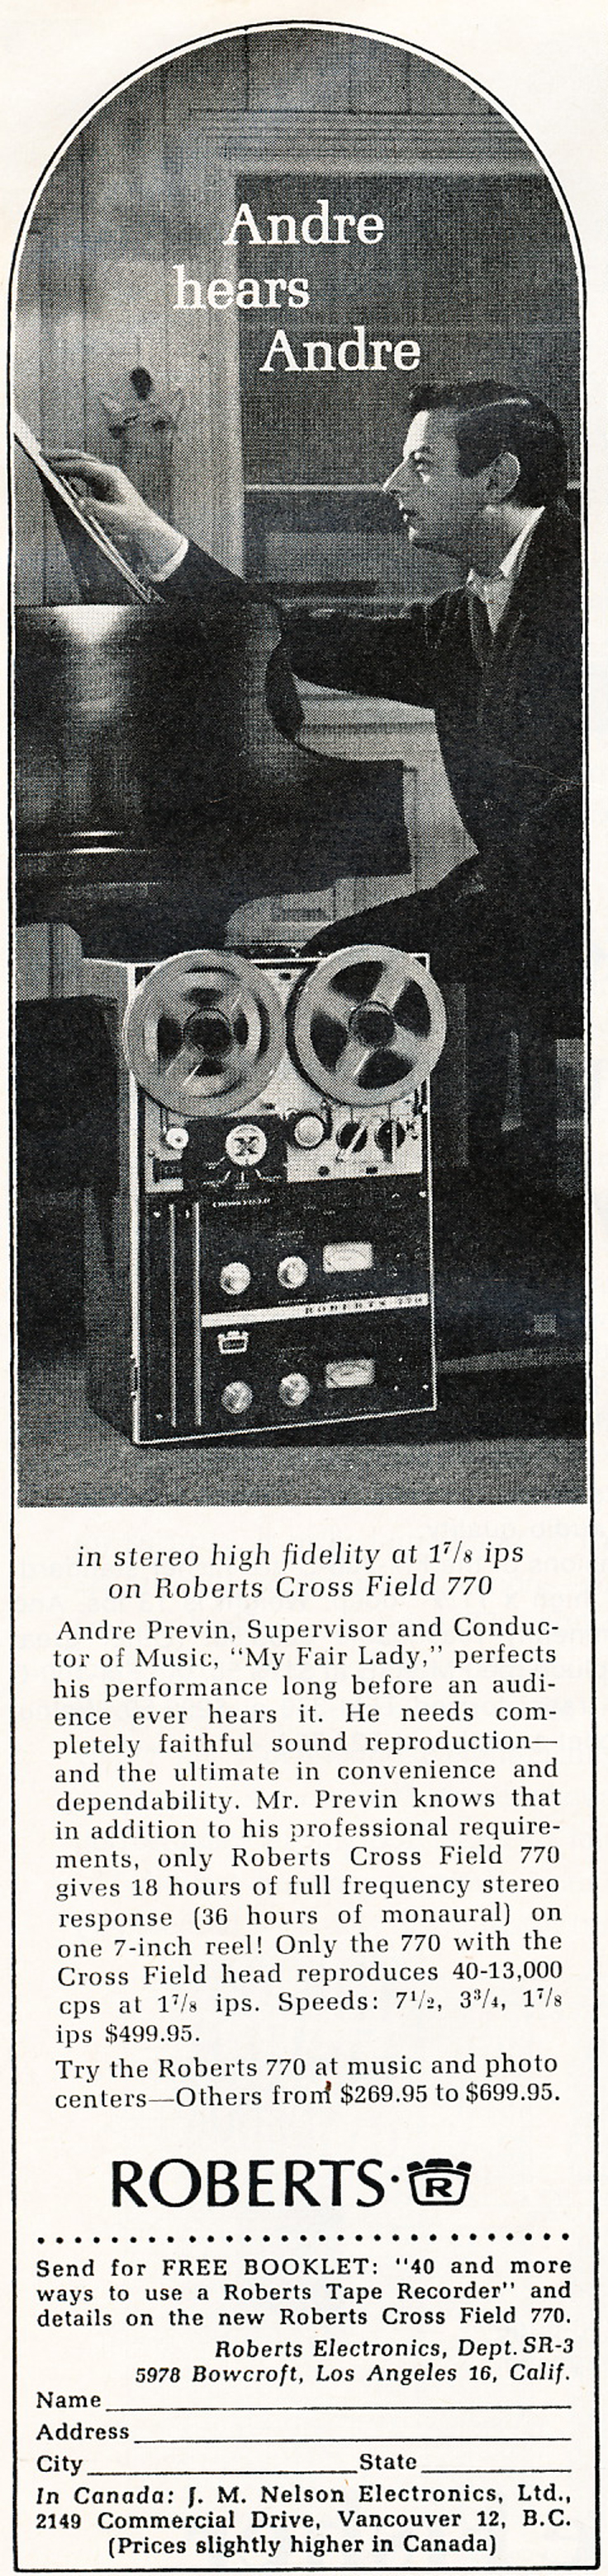 In the Reel2ReelTexas.com's vintage recording collection, this is a Roberts 770X tape recorder ad featuring Adrea Previn